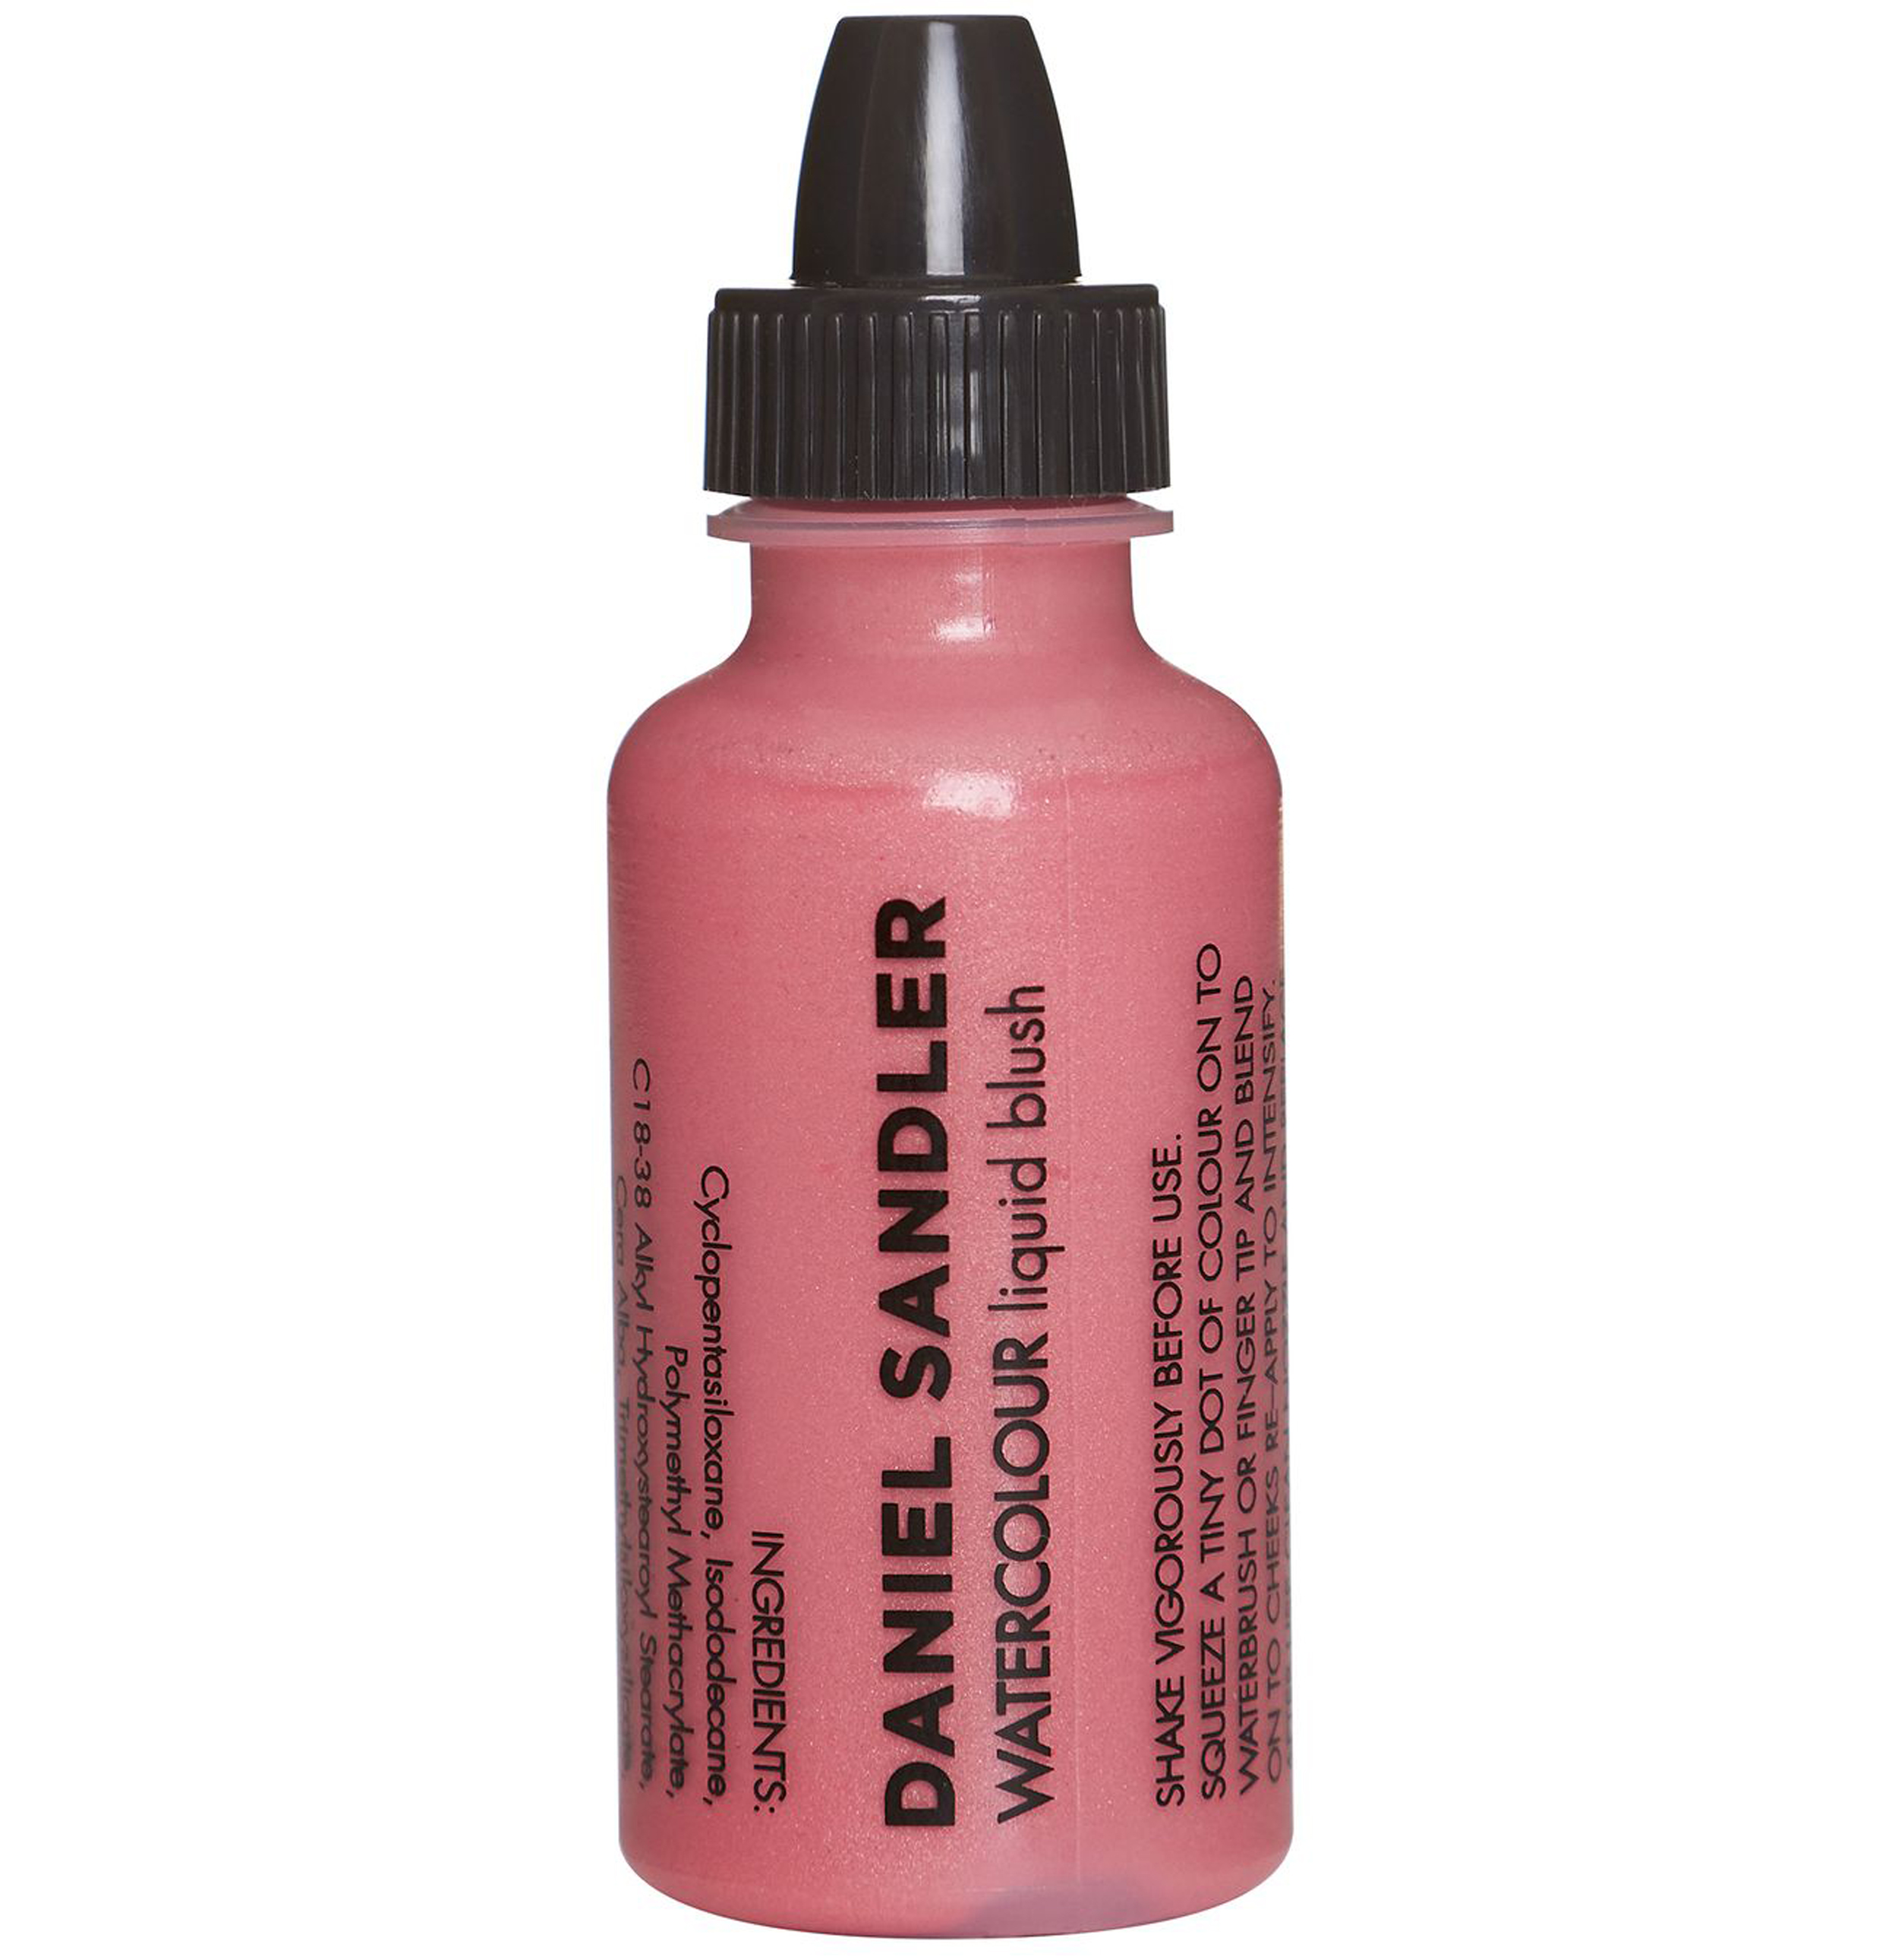 Daniel Sandler Watercolour Liquid Blush in Flush